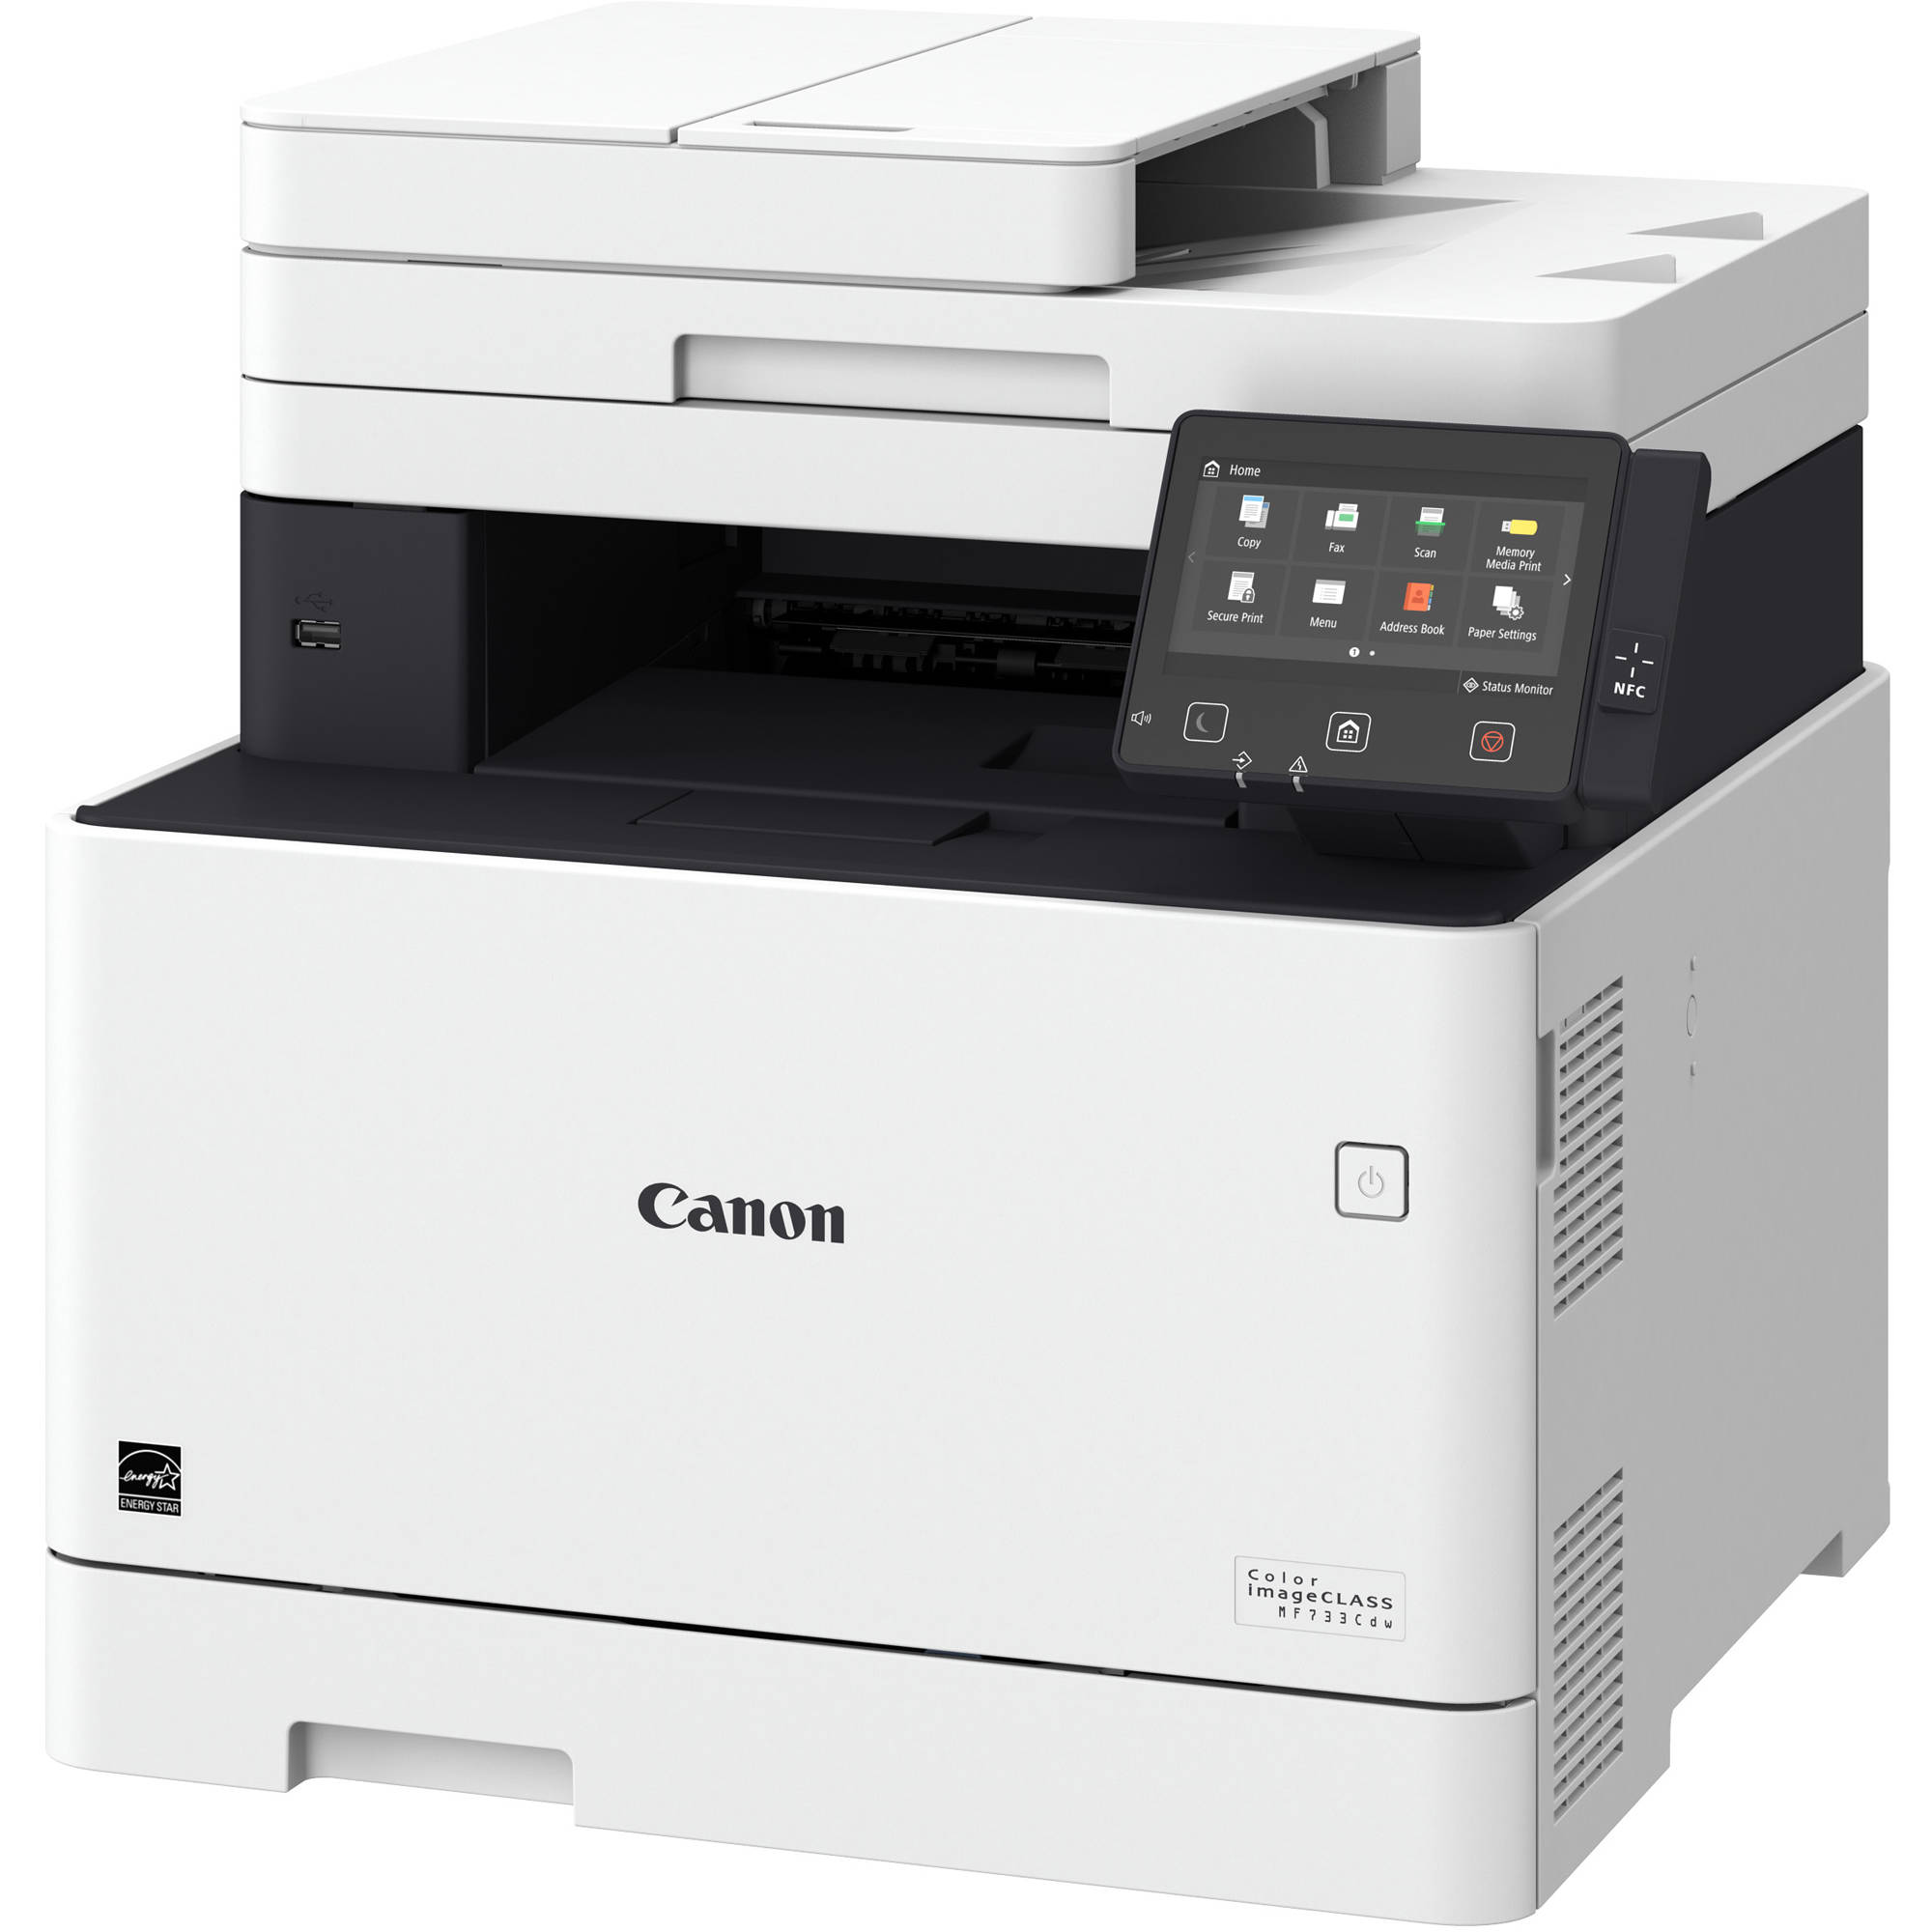 CANON MF733CDW DRIVERS FOR WINDOWS